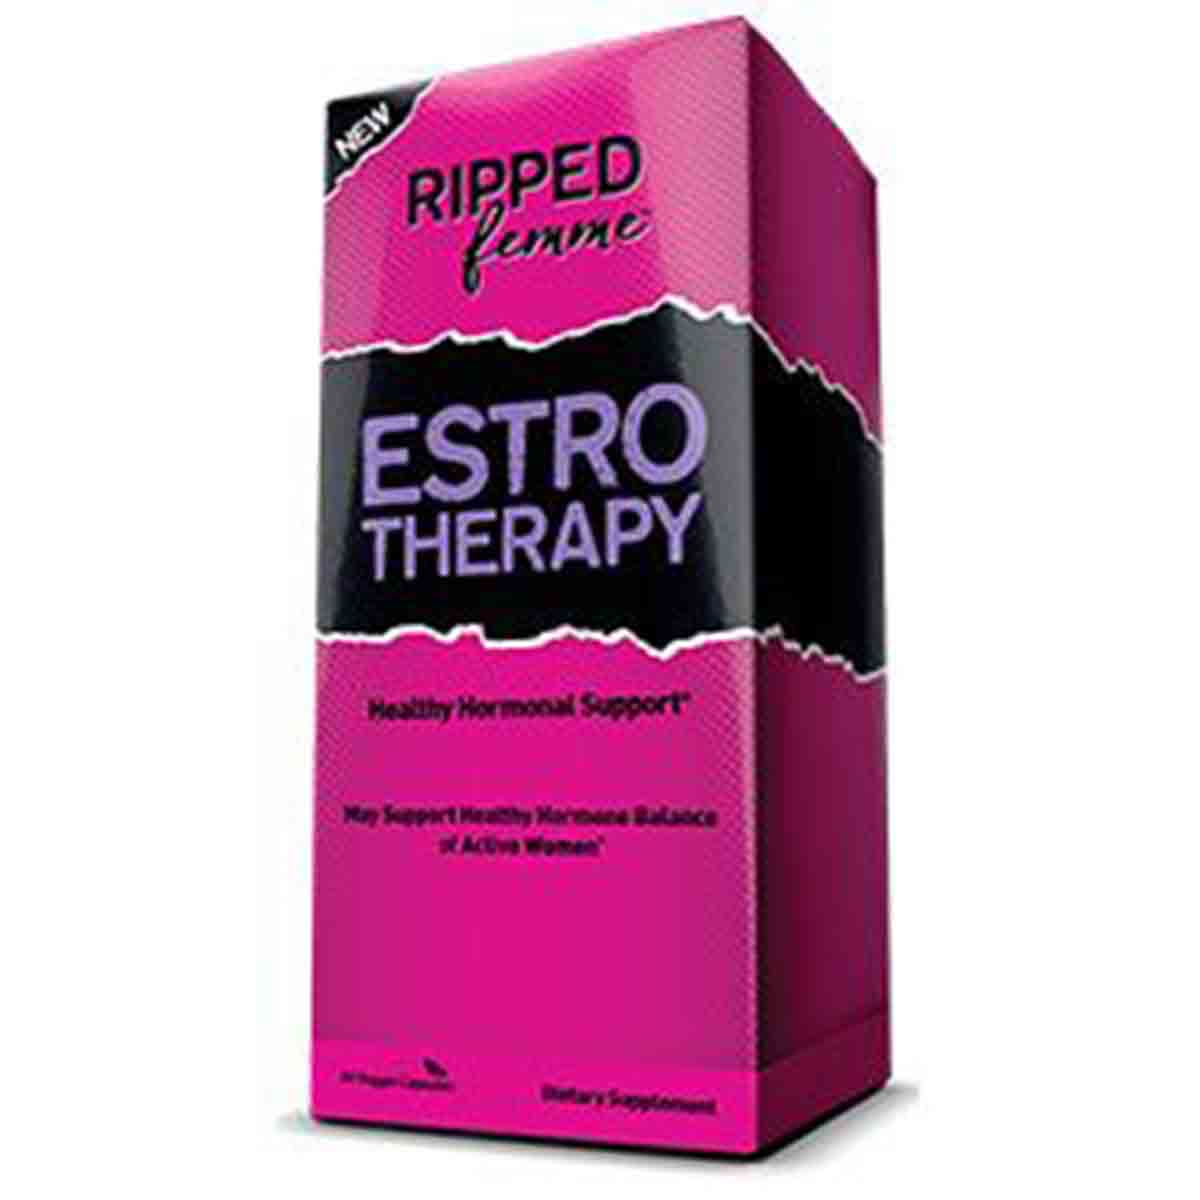 Ripped Femme Estro Therapy